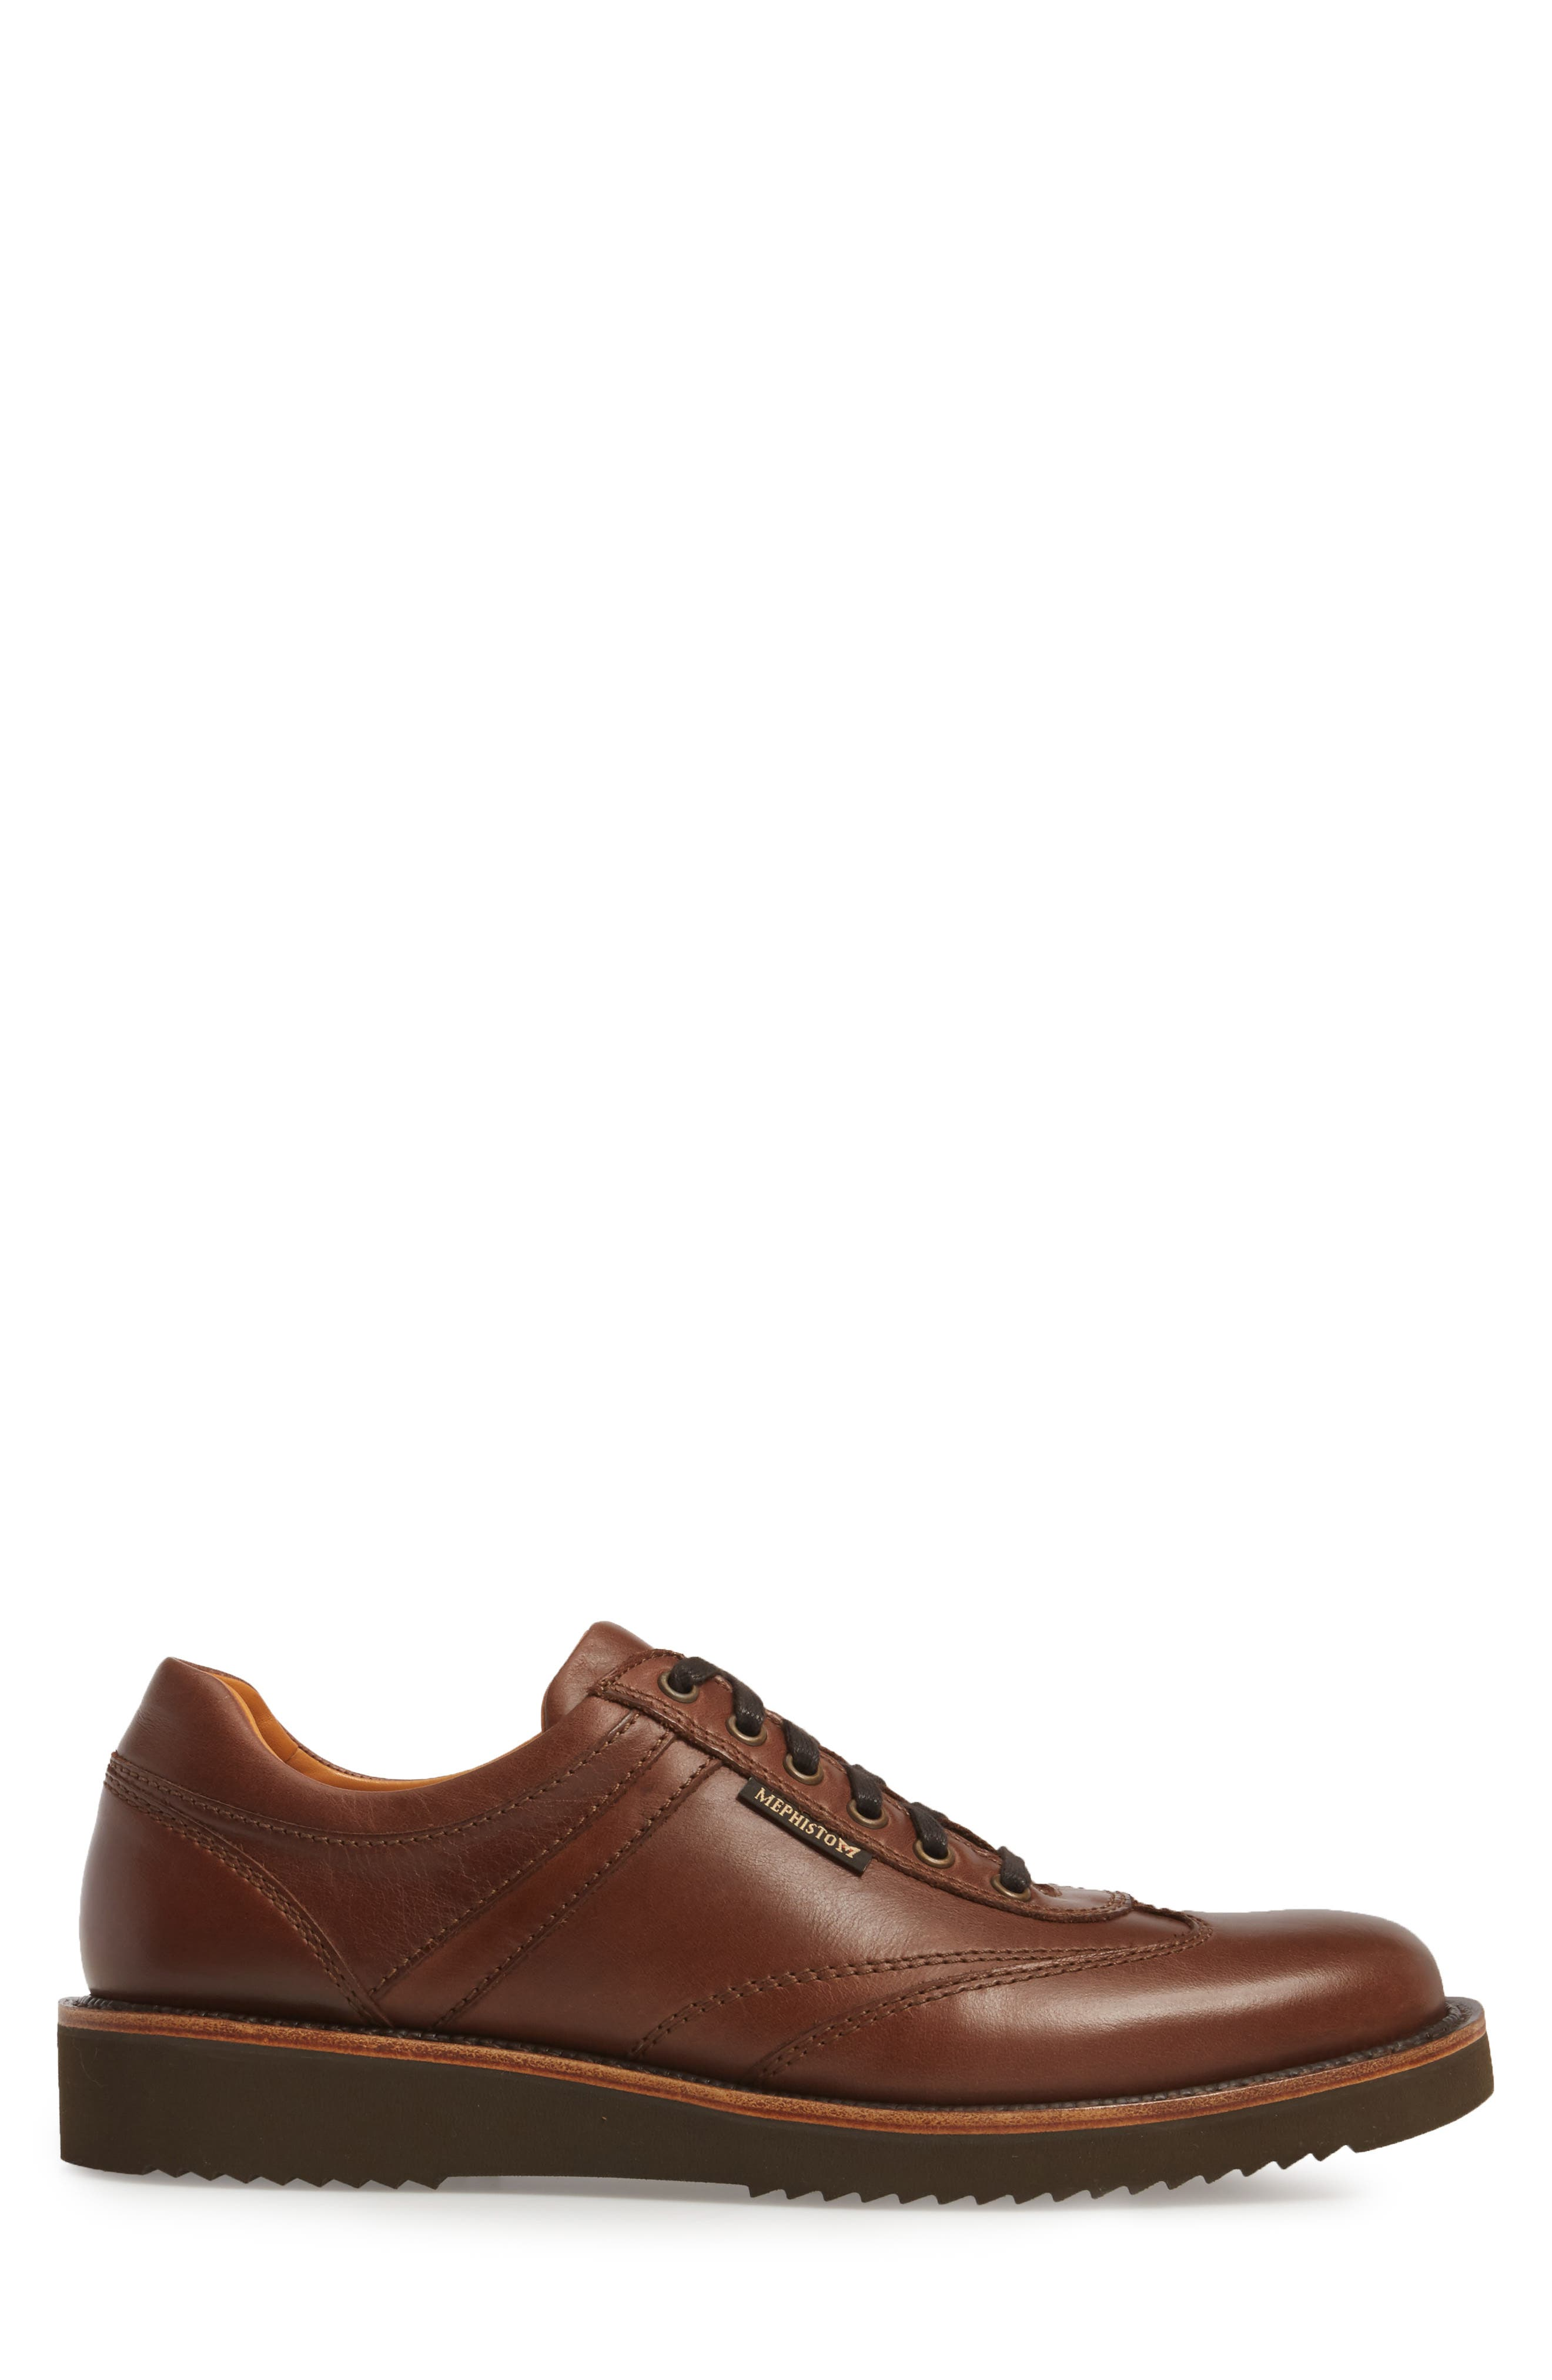 MEPHISTO, Adriano Sneaker, Alternate thumbnail 3, color, CHESTNUT LEATHER